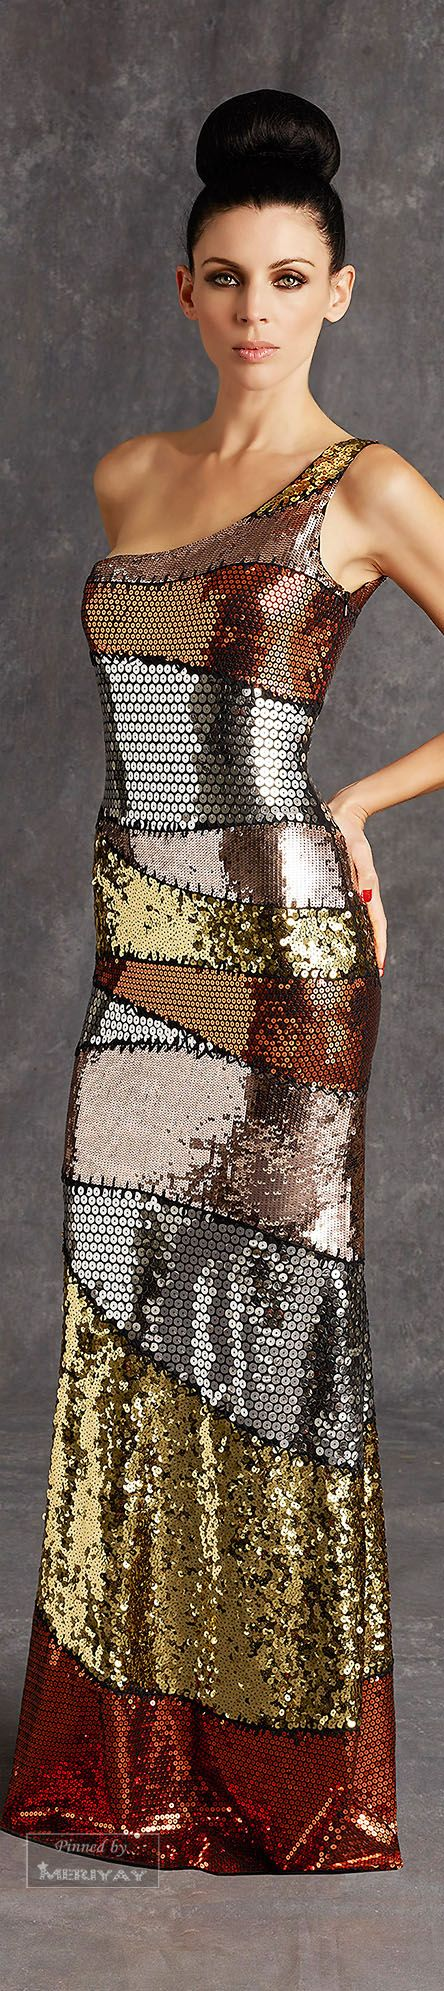 Time To Shine - Sparkle Couture Gown